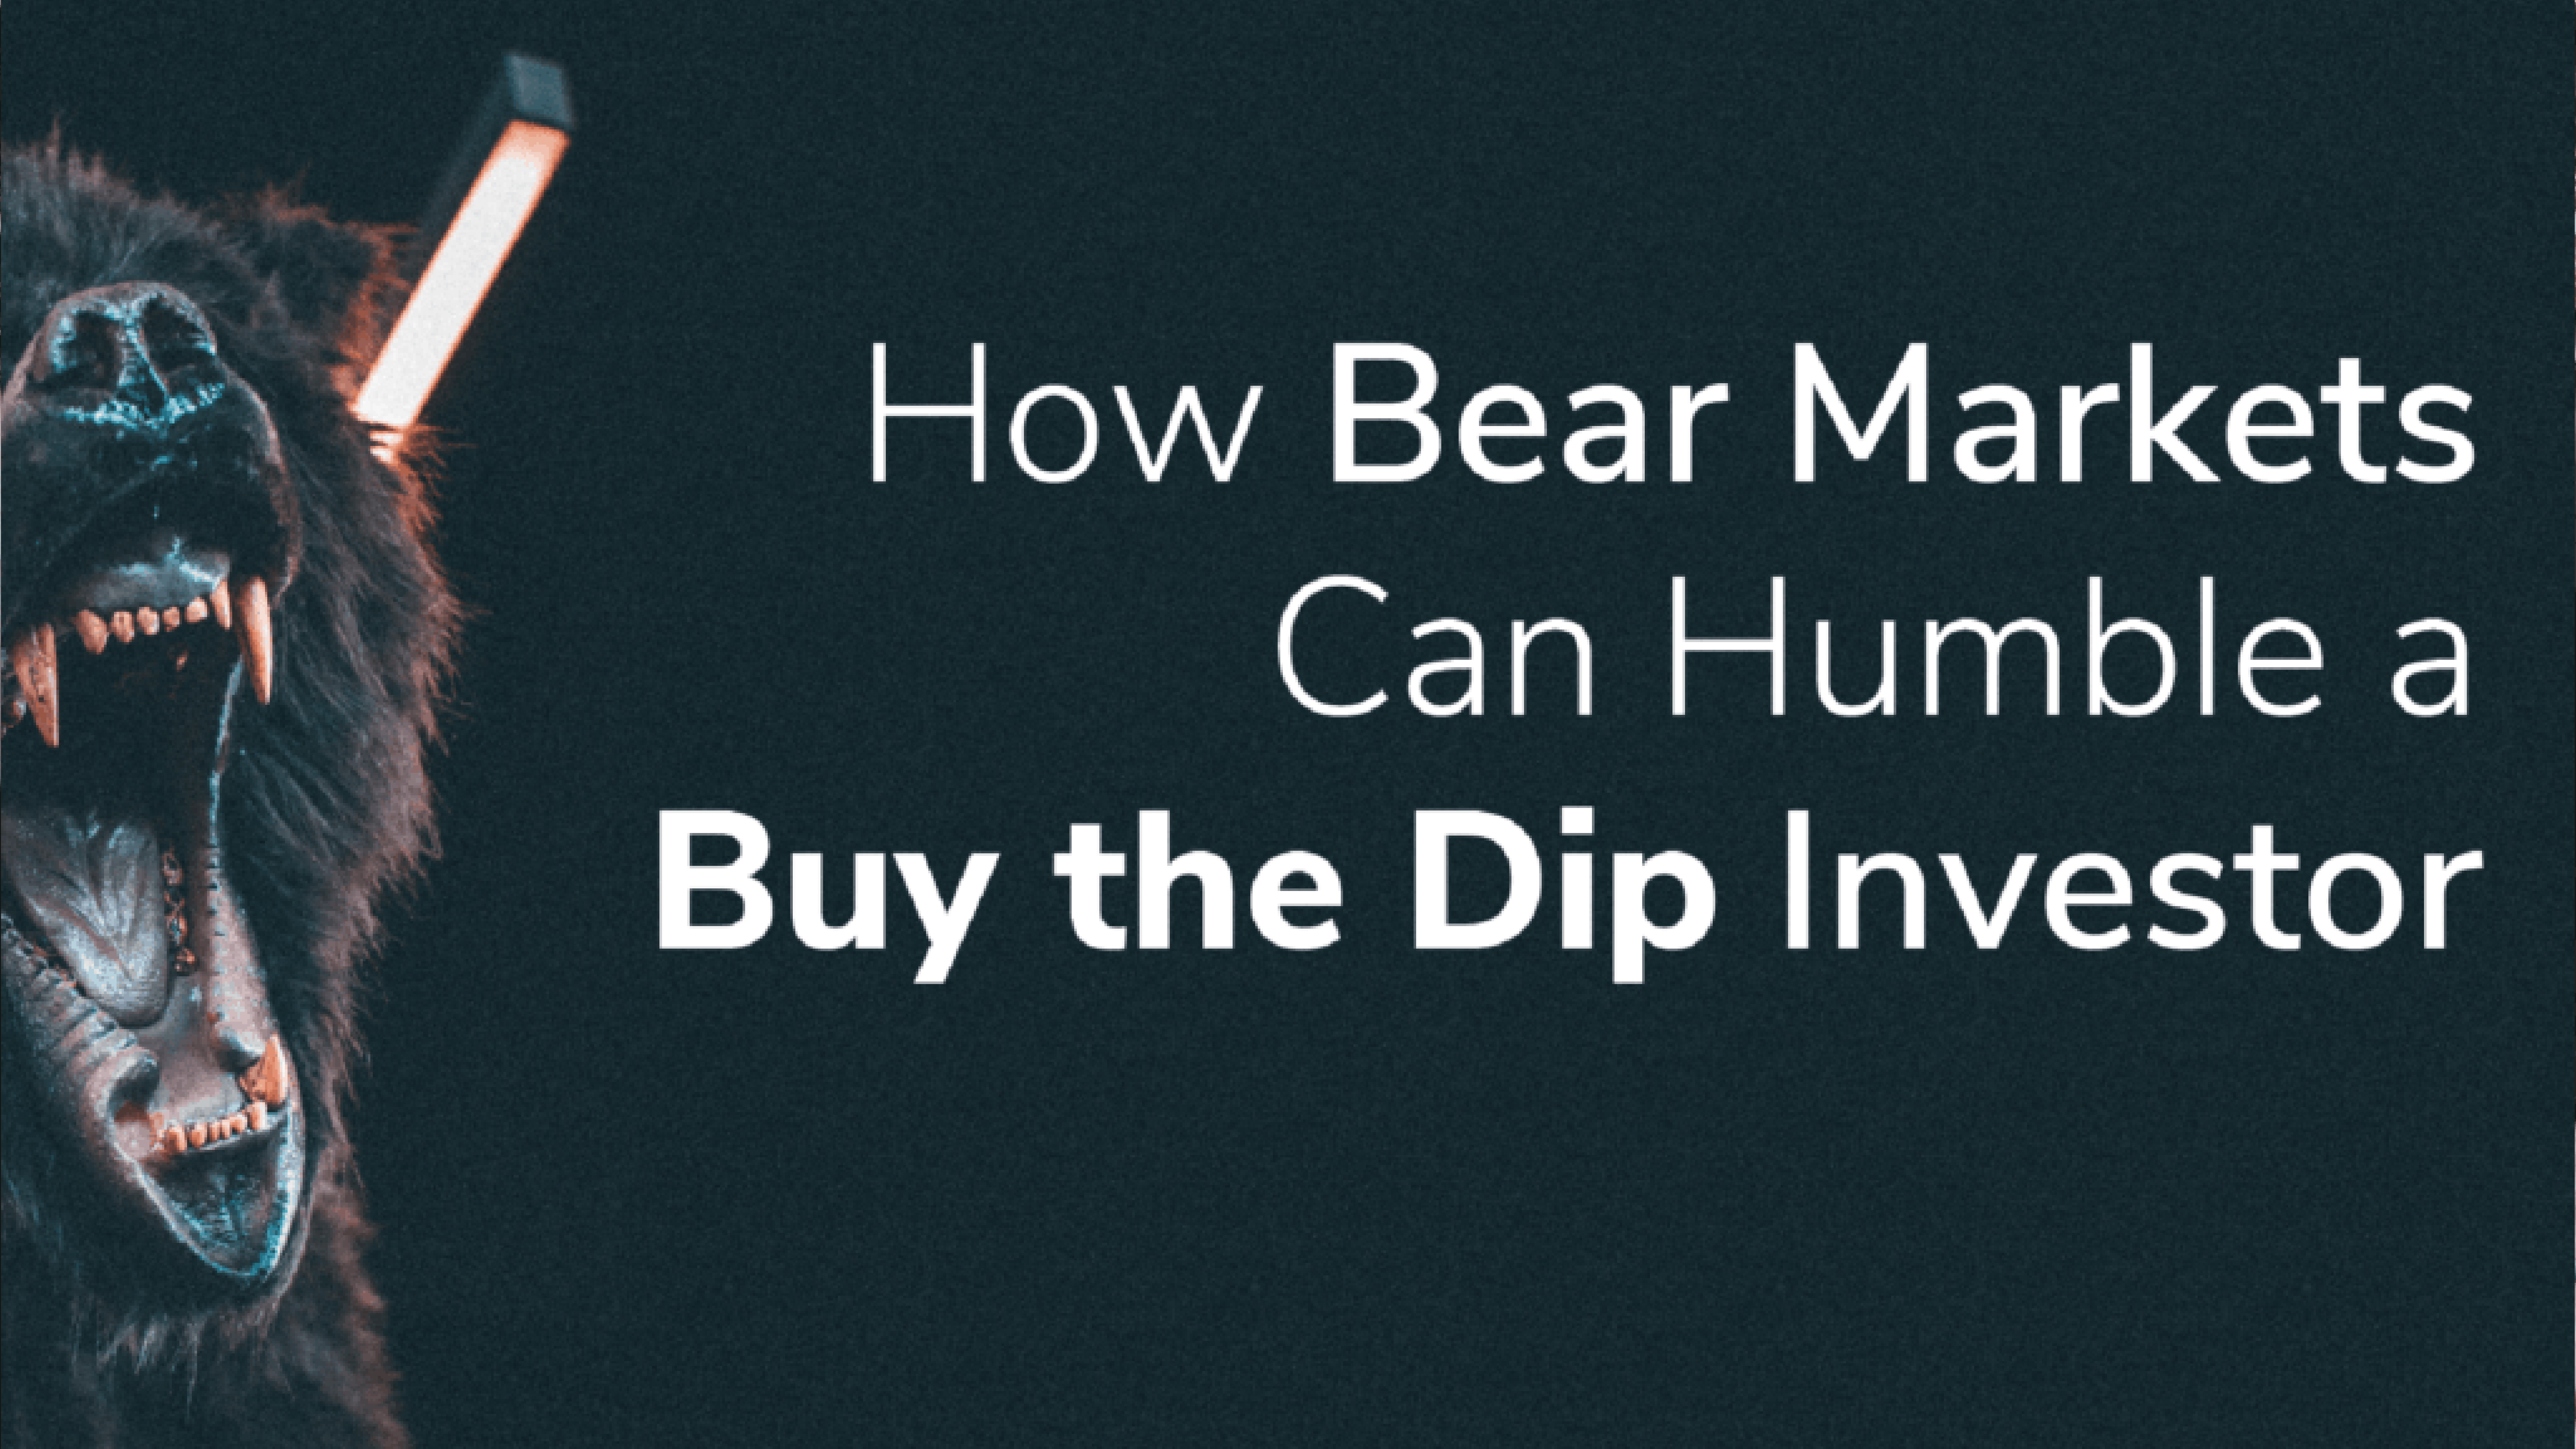 How Bear Markets Can Humble a Buy the Dip Investor